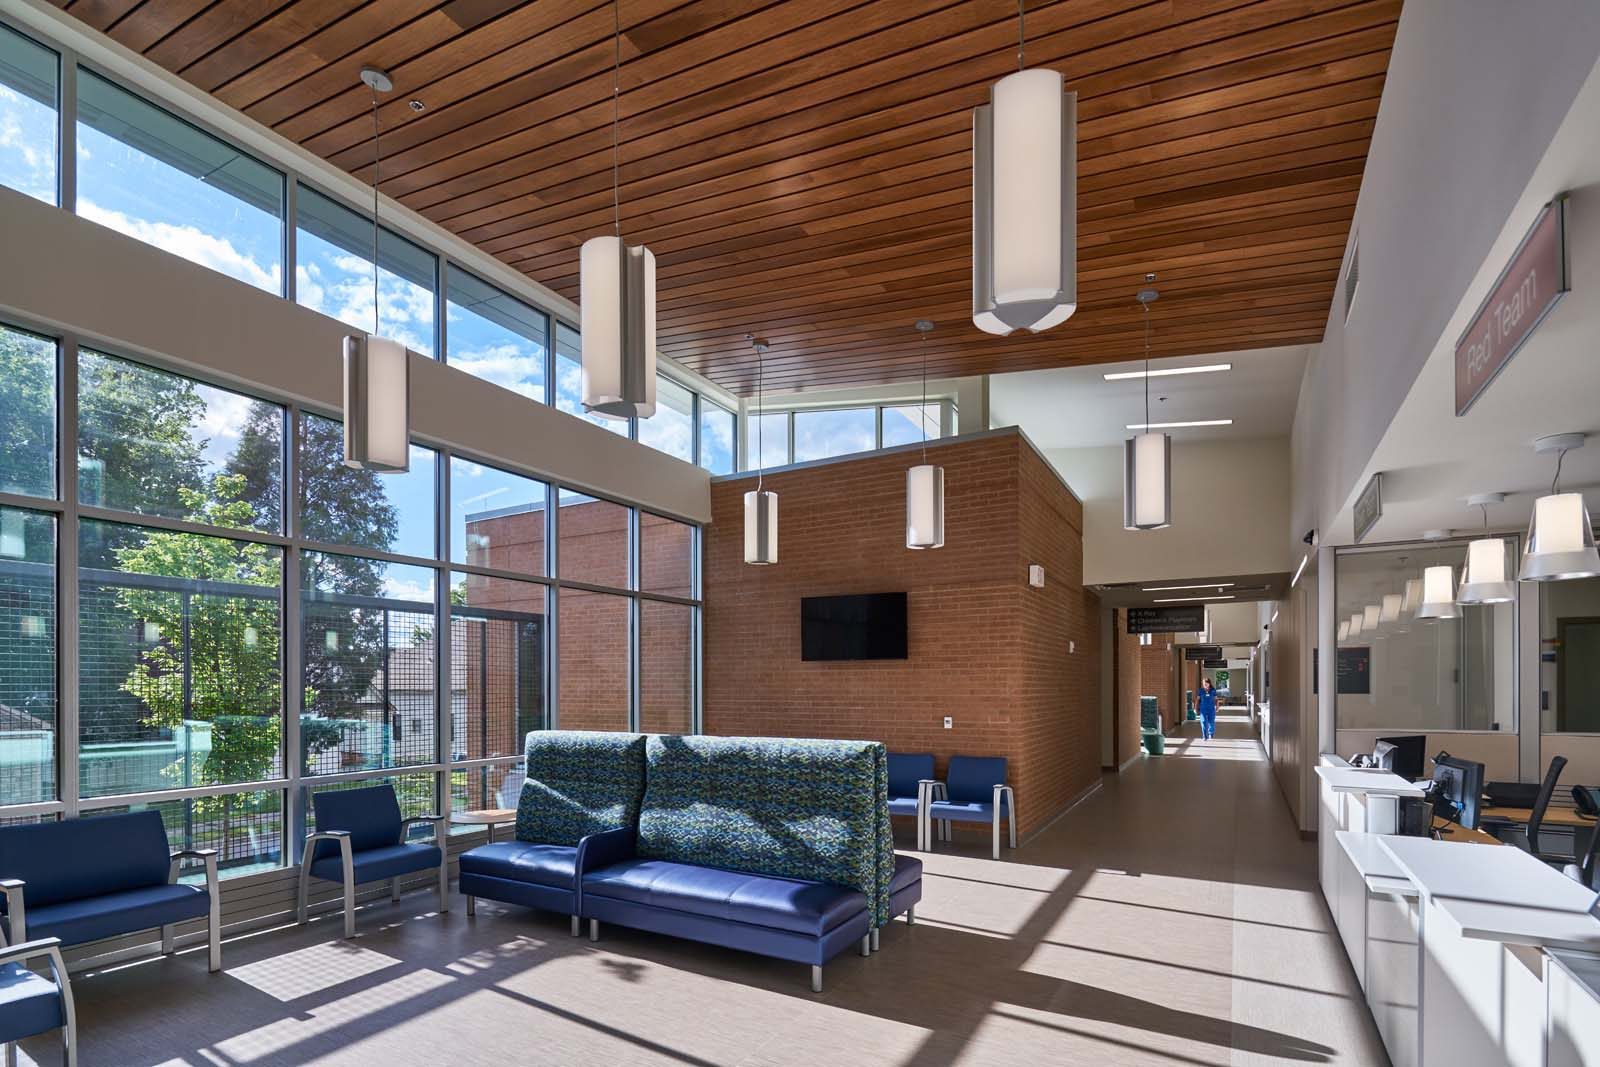 West Family Clinic  University of Arkansas for Medical Sciences  VIEW PROJECT →